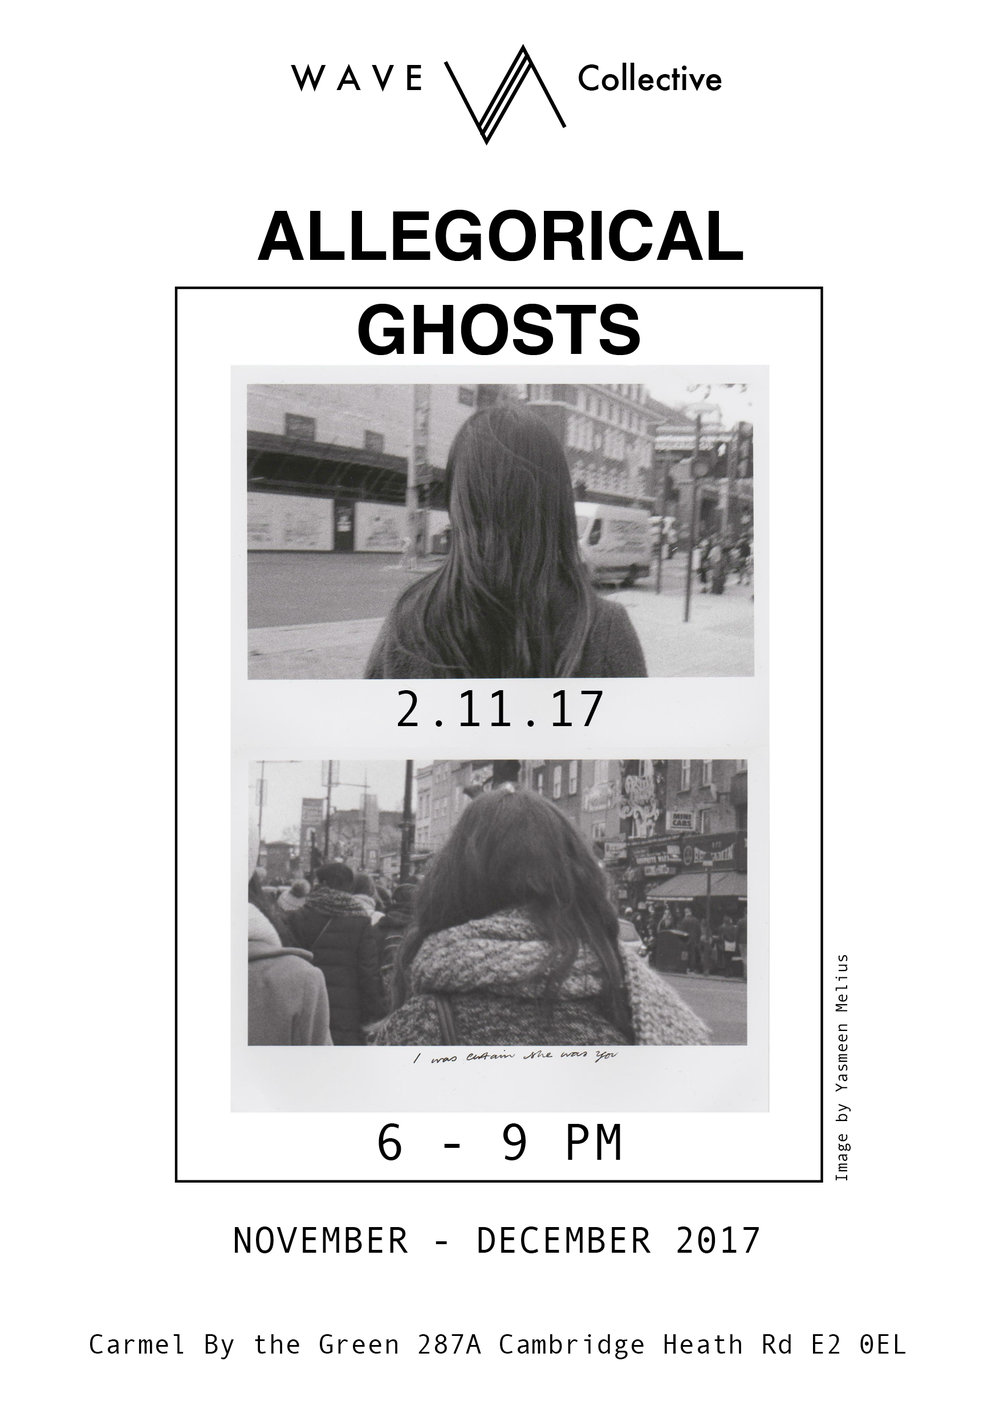 Allegorical ghosts final credit-2.jpg